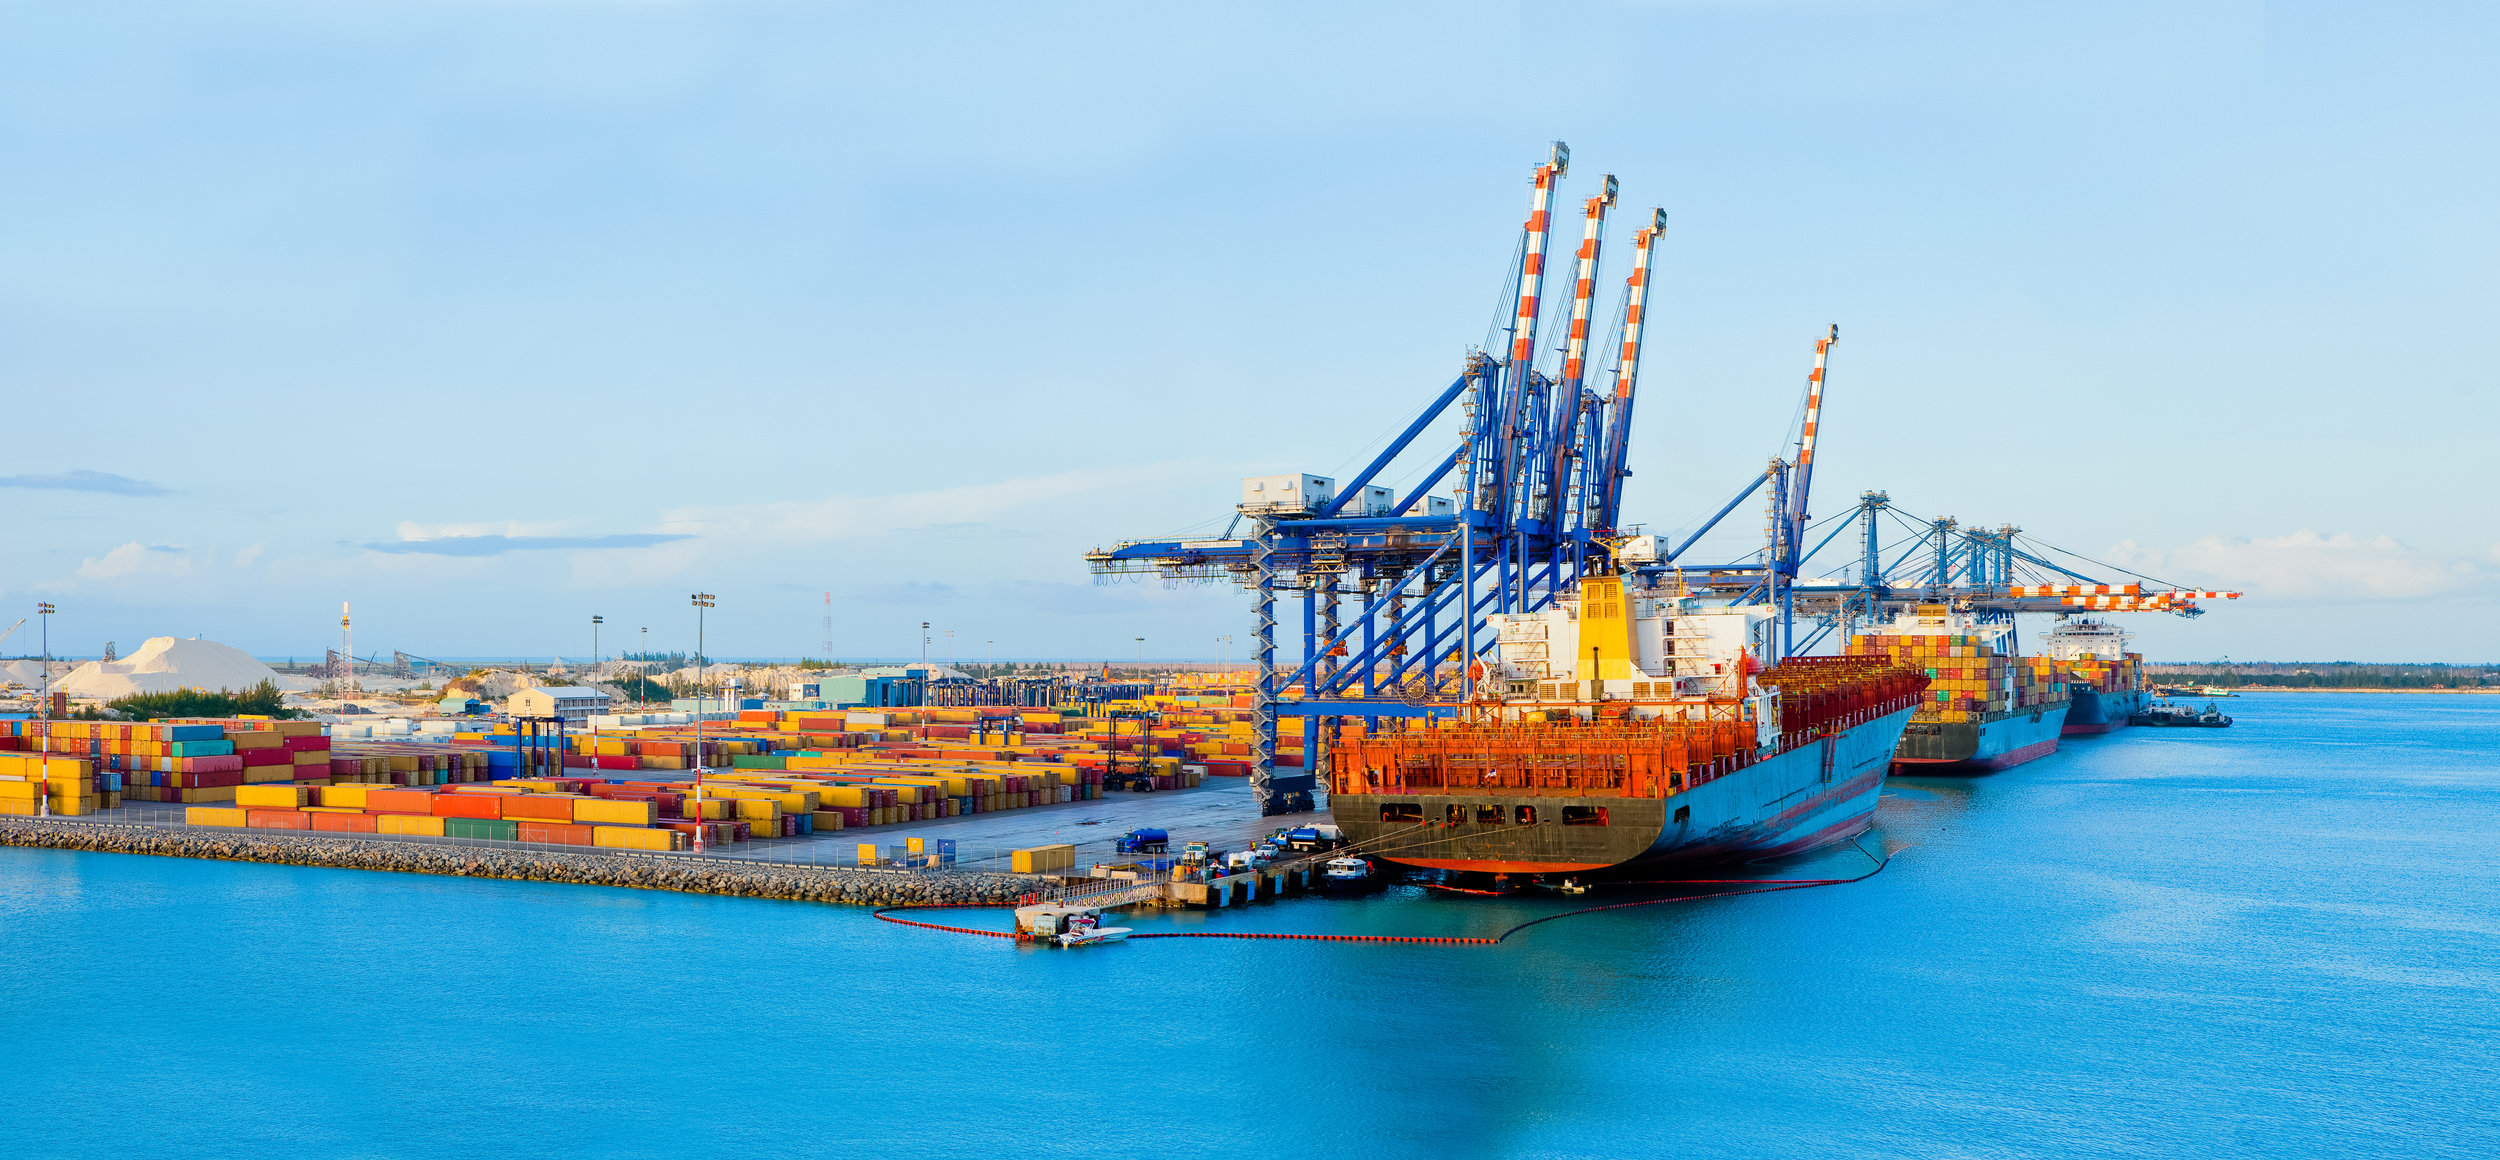 A container port in the Caribbean.